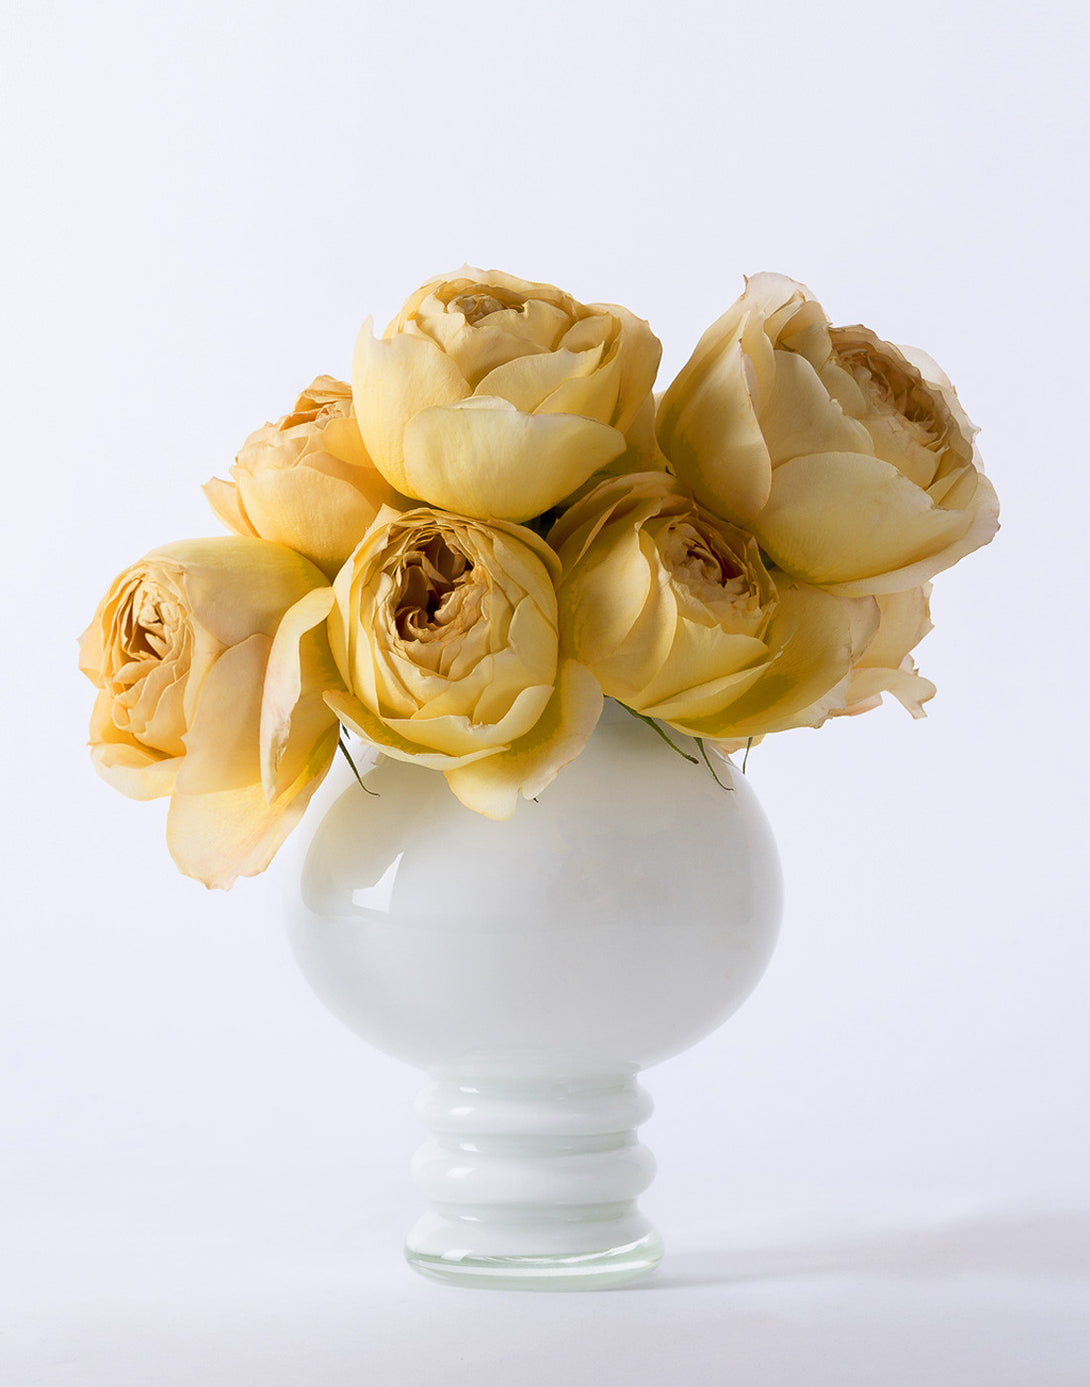 White vase with yellow garden roses